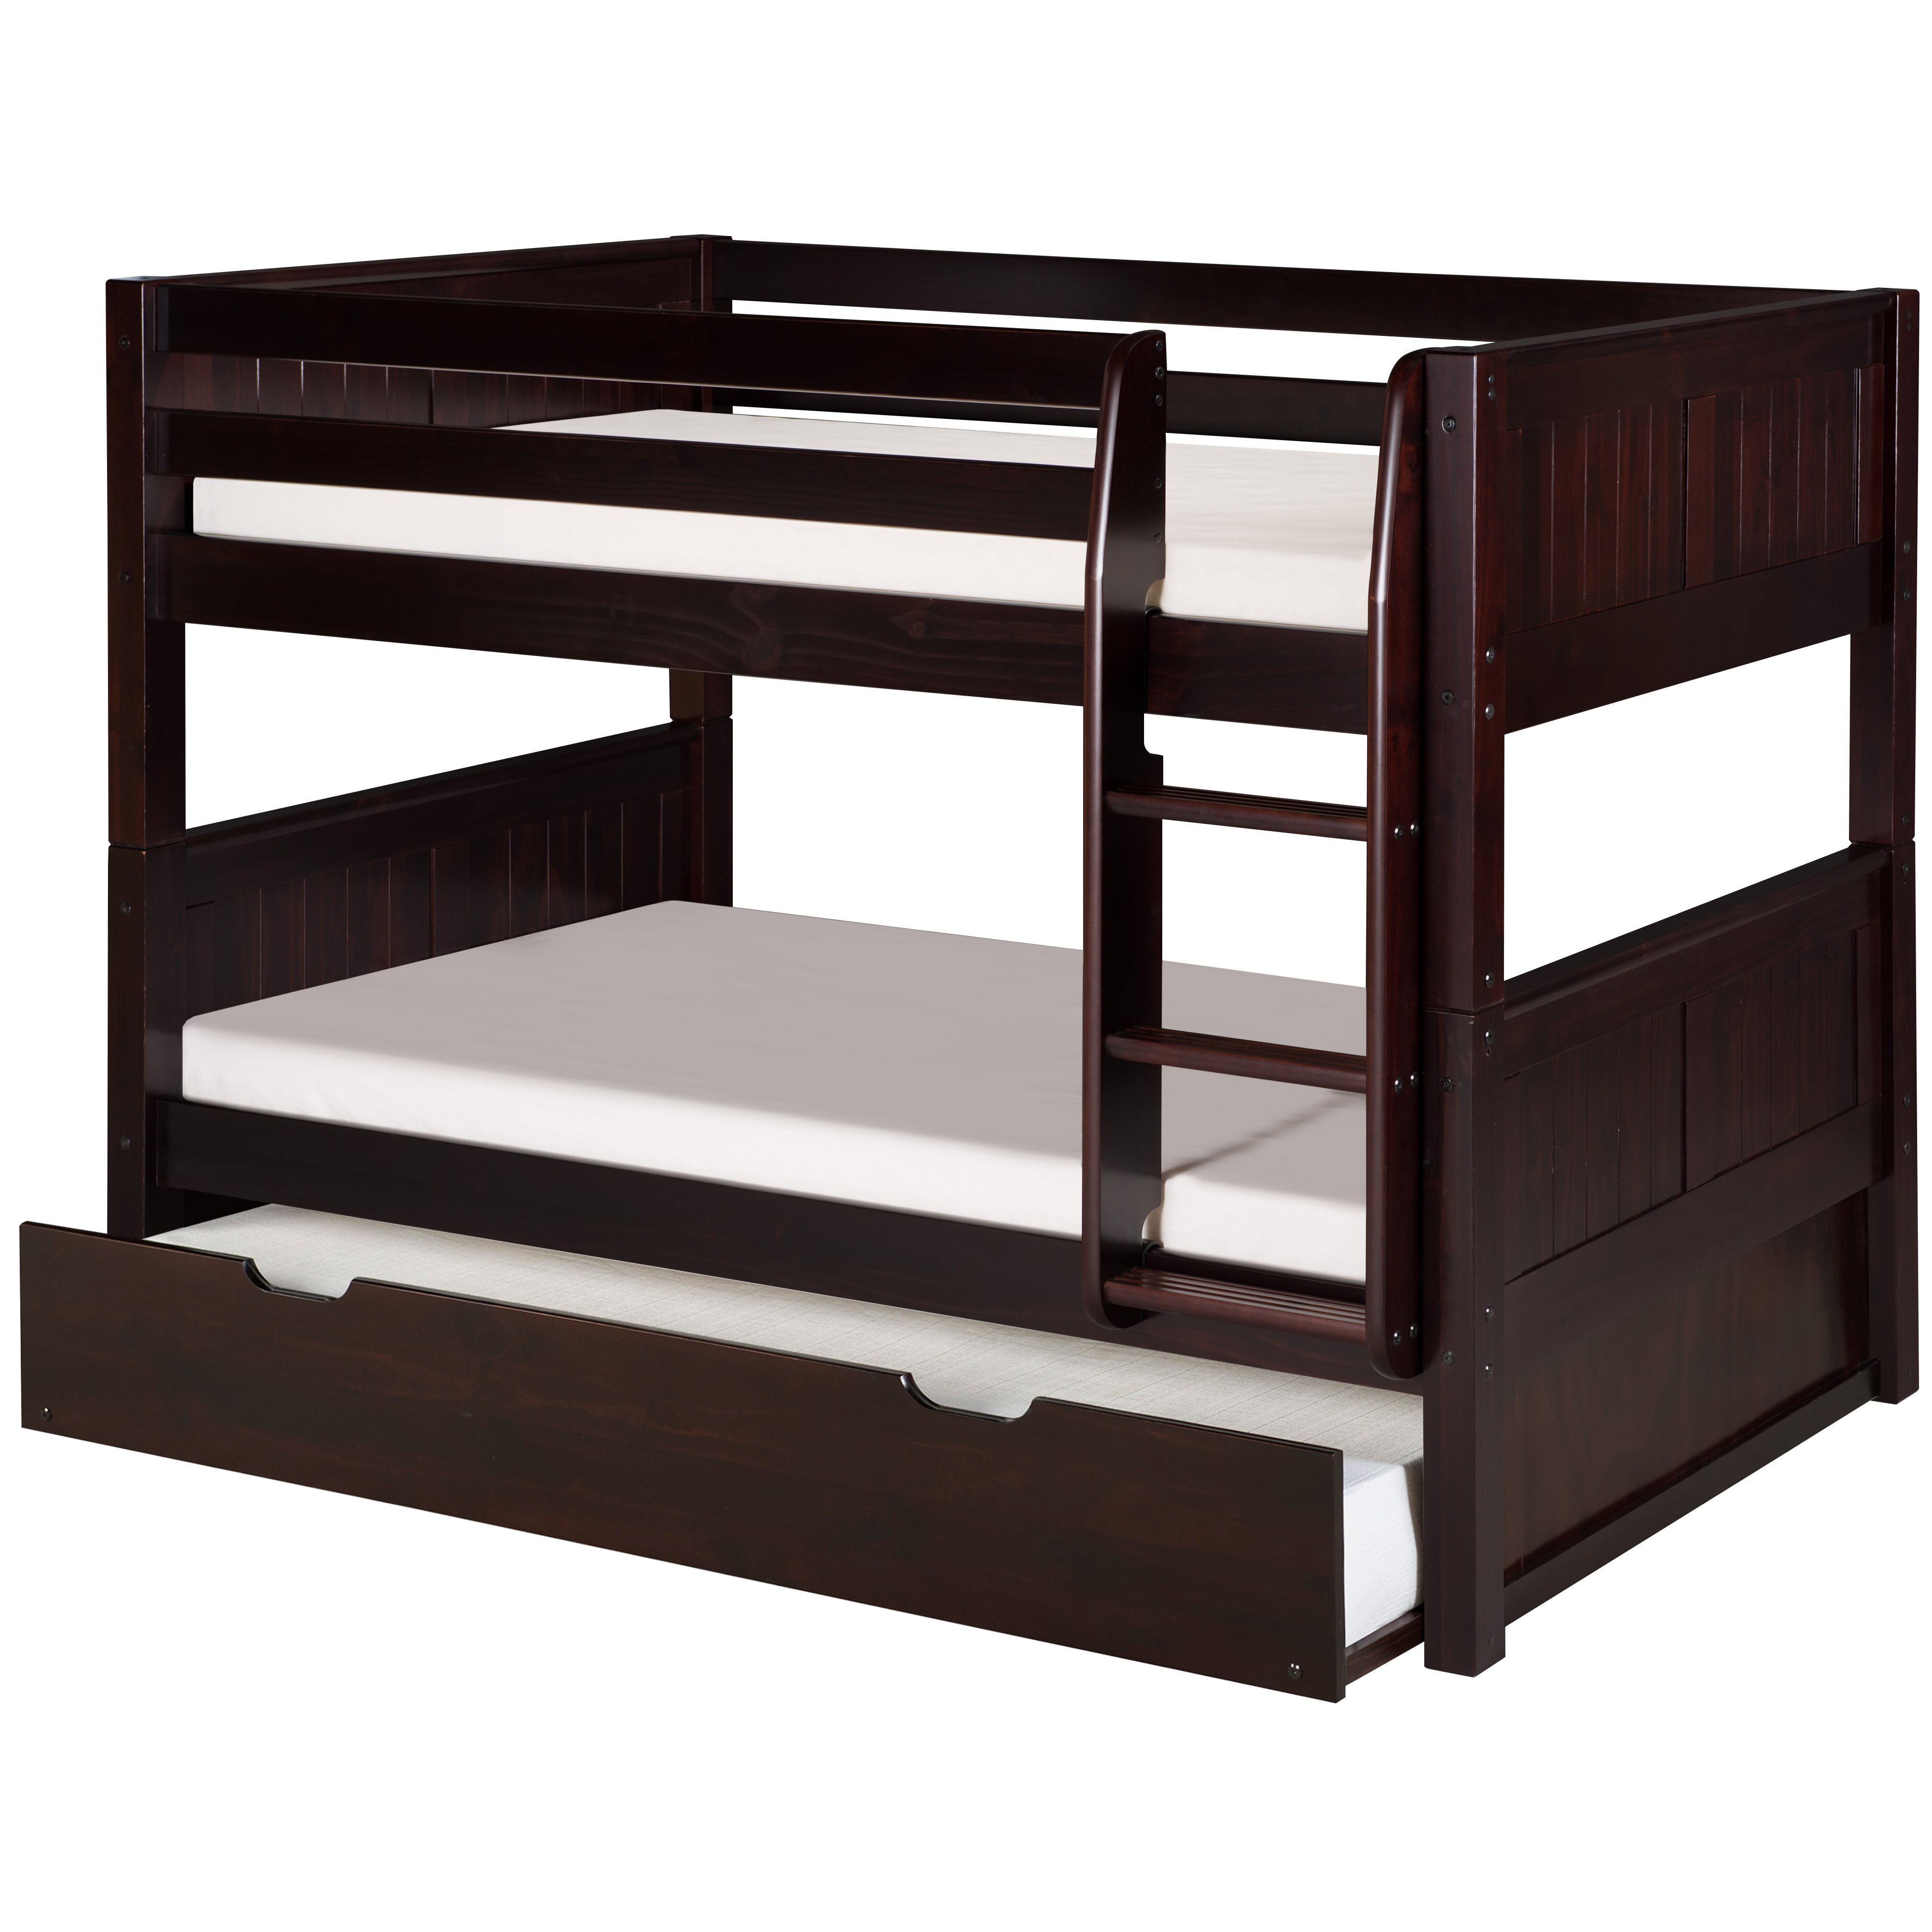 Camaflexi camaflexi low twin bunk bed with trundle for Loft bed with trundle